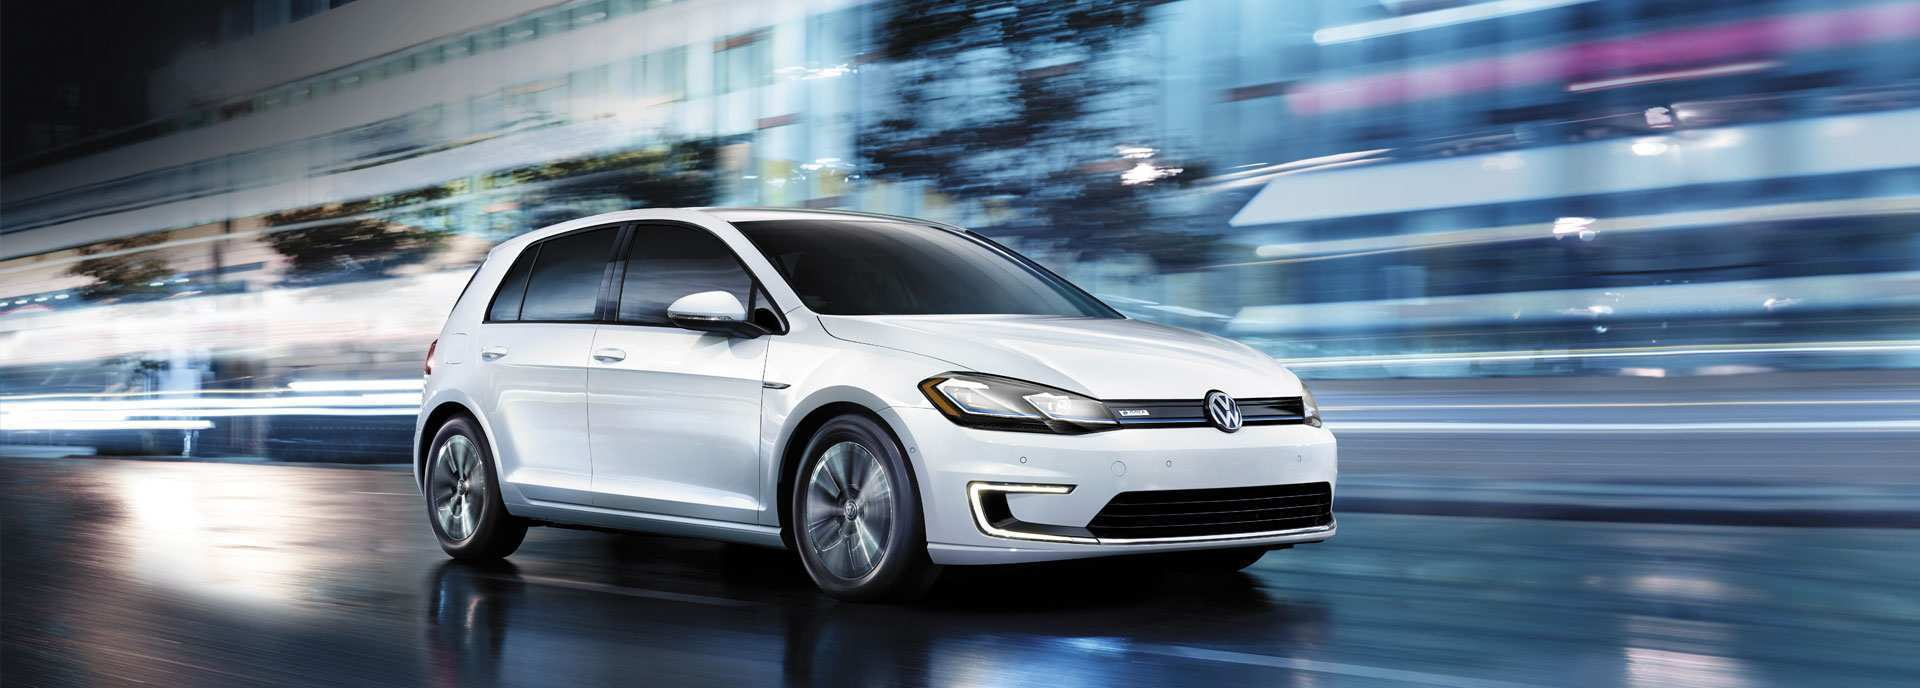 55 The Vw E Golf 2019 Price And Release Date